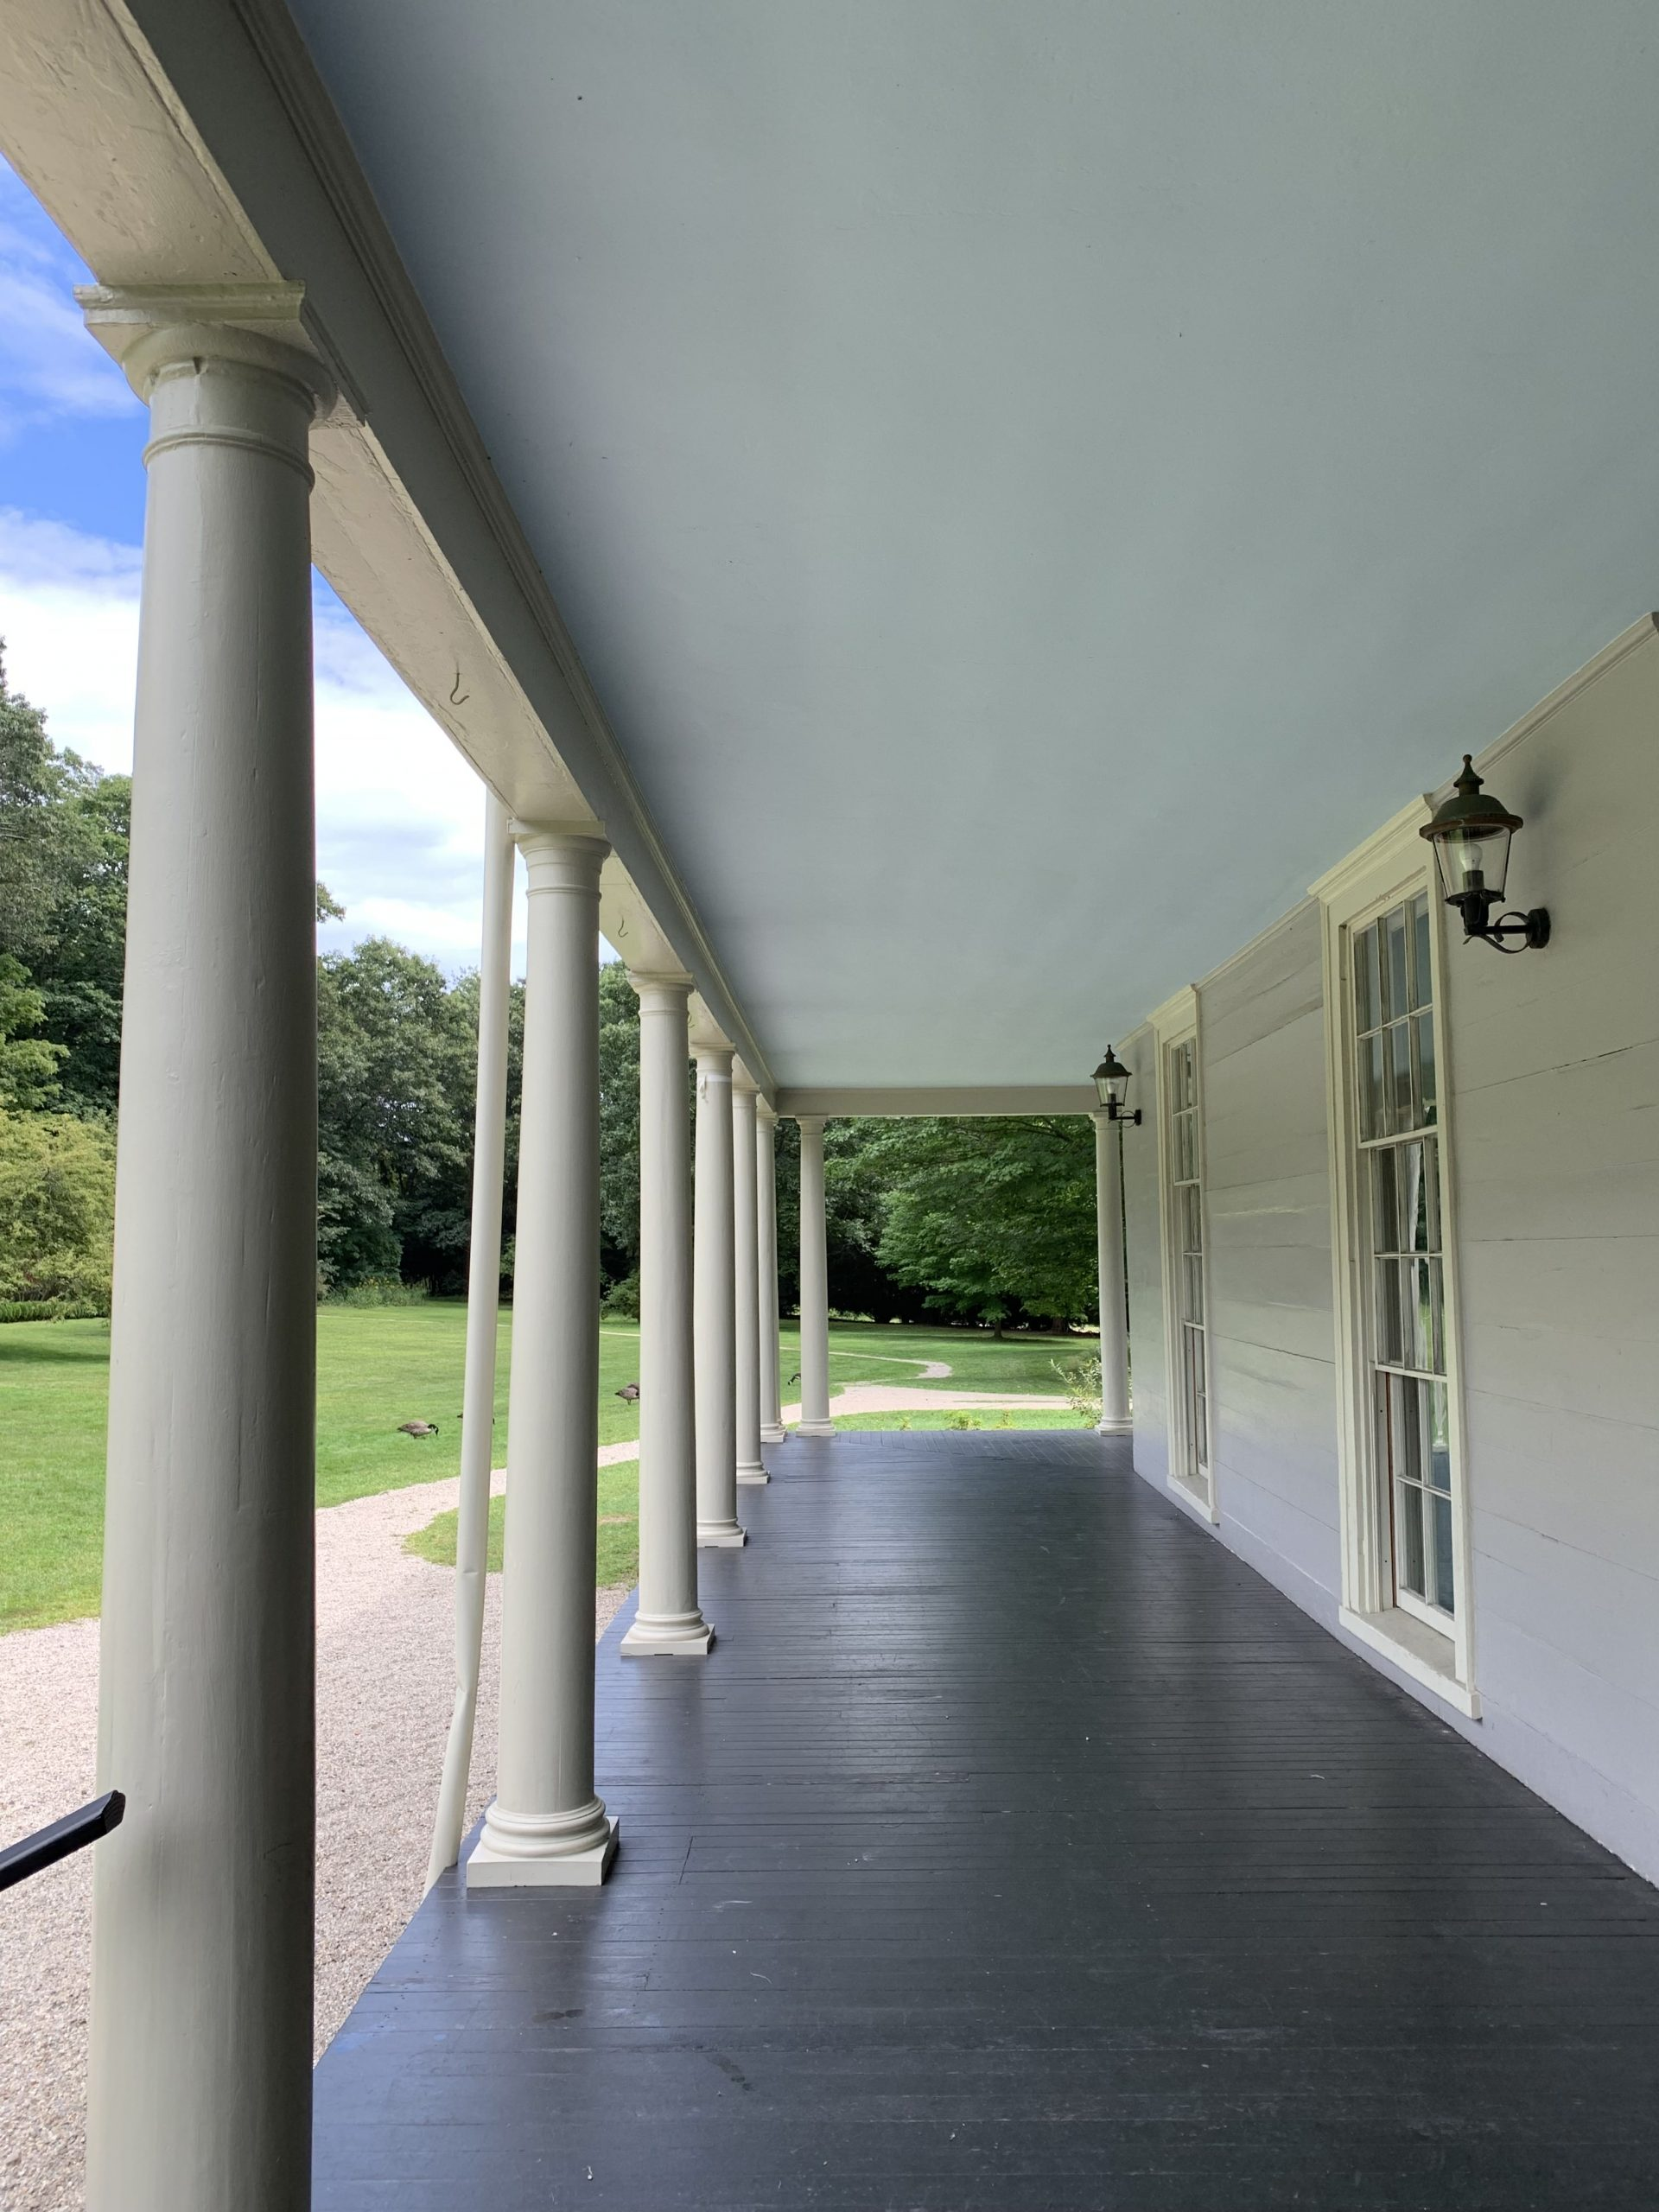 A photo of the underside of the roof of the Lyman Estate's veranda. It is a light blue color.